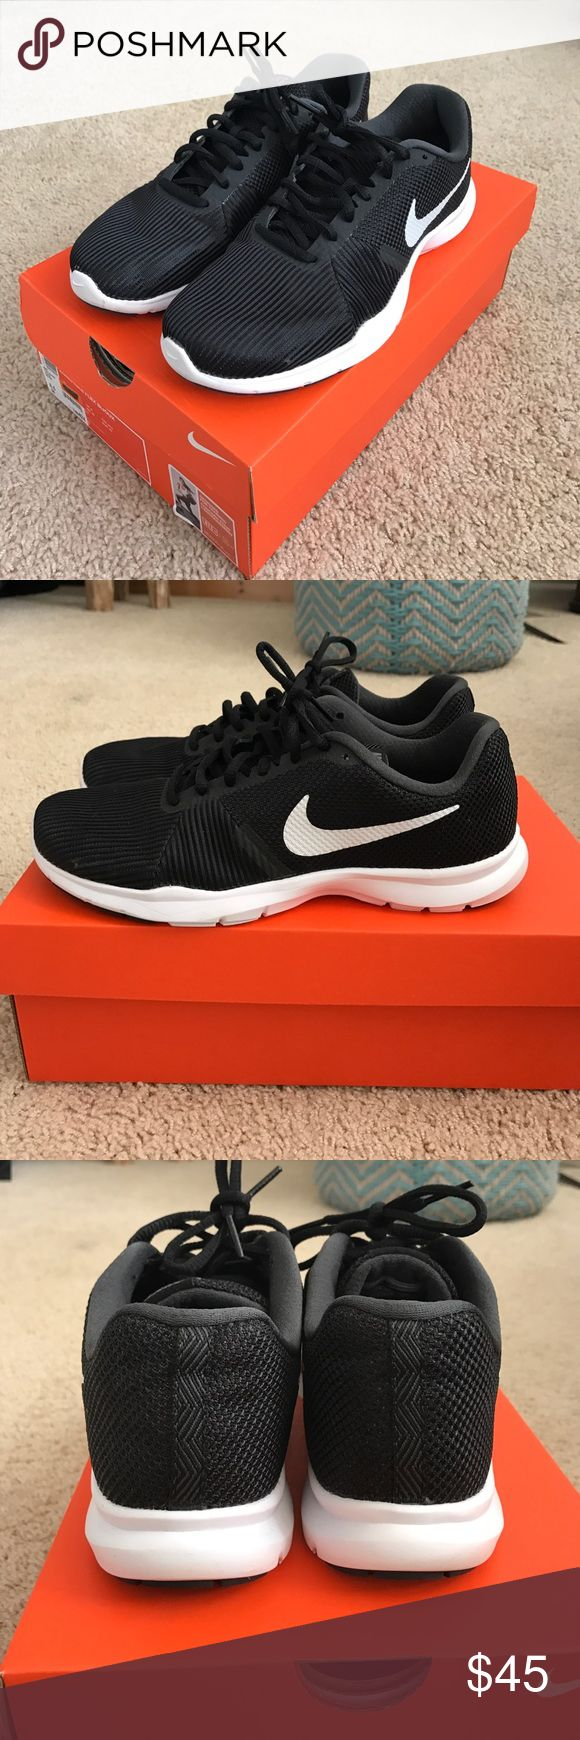 Nike Flex Bijoux Black Sneakers Nikeflex Shoes 8.5 Nike Flex Bijoux Black Sneakers Nikeflex Shoes 8.5. They come with there original box. Worn only once. Excellent condition! Only wear is on the bottom soles. Nike Shoes Sneakers